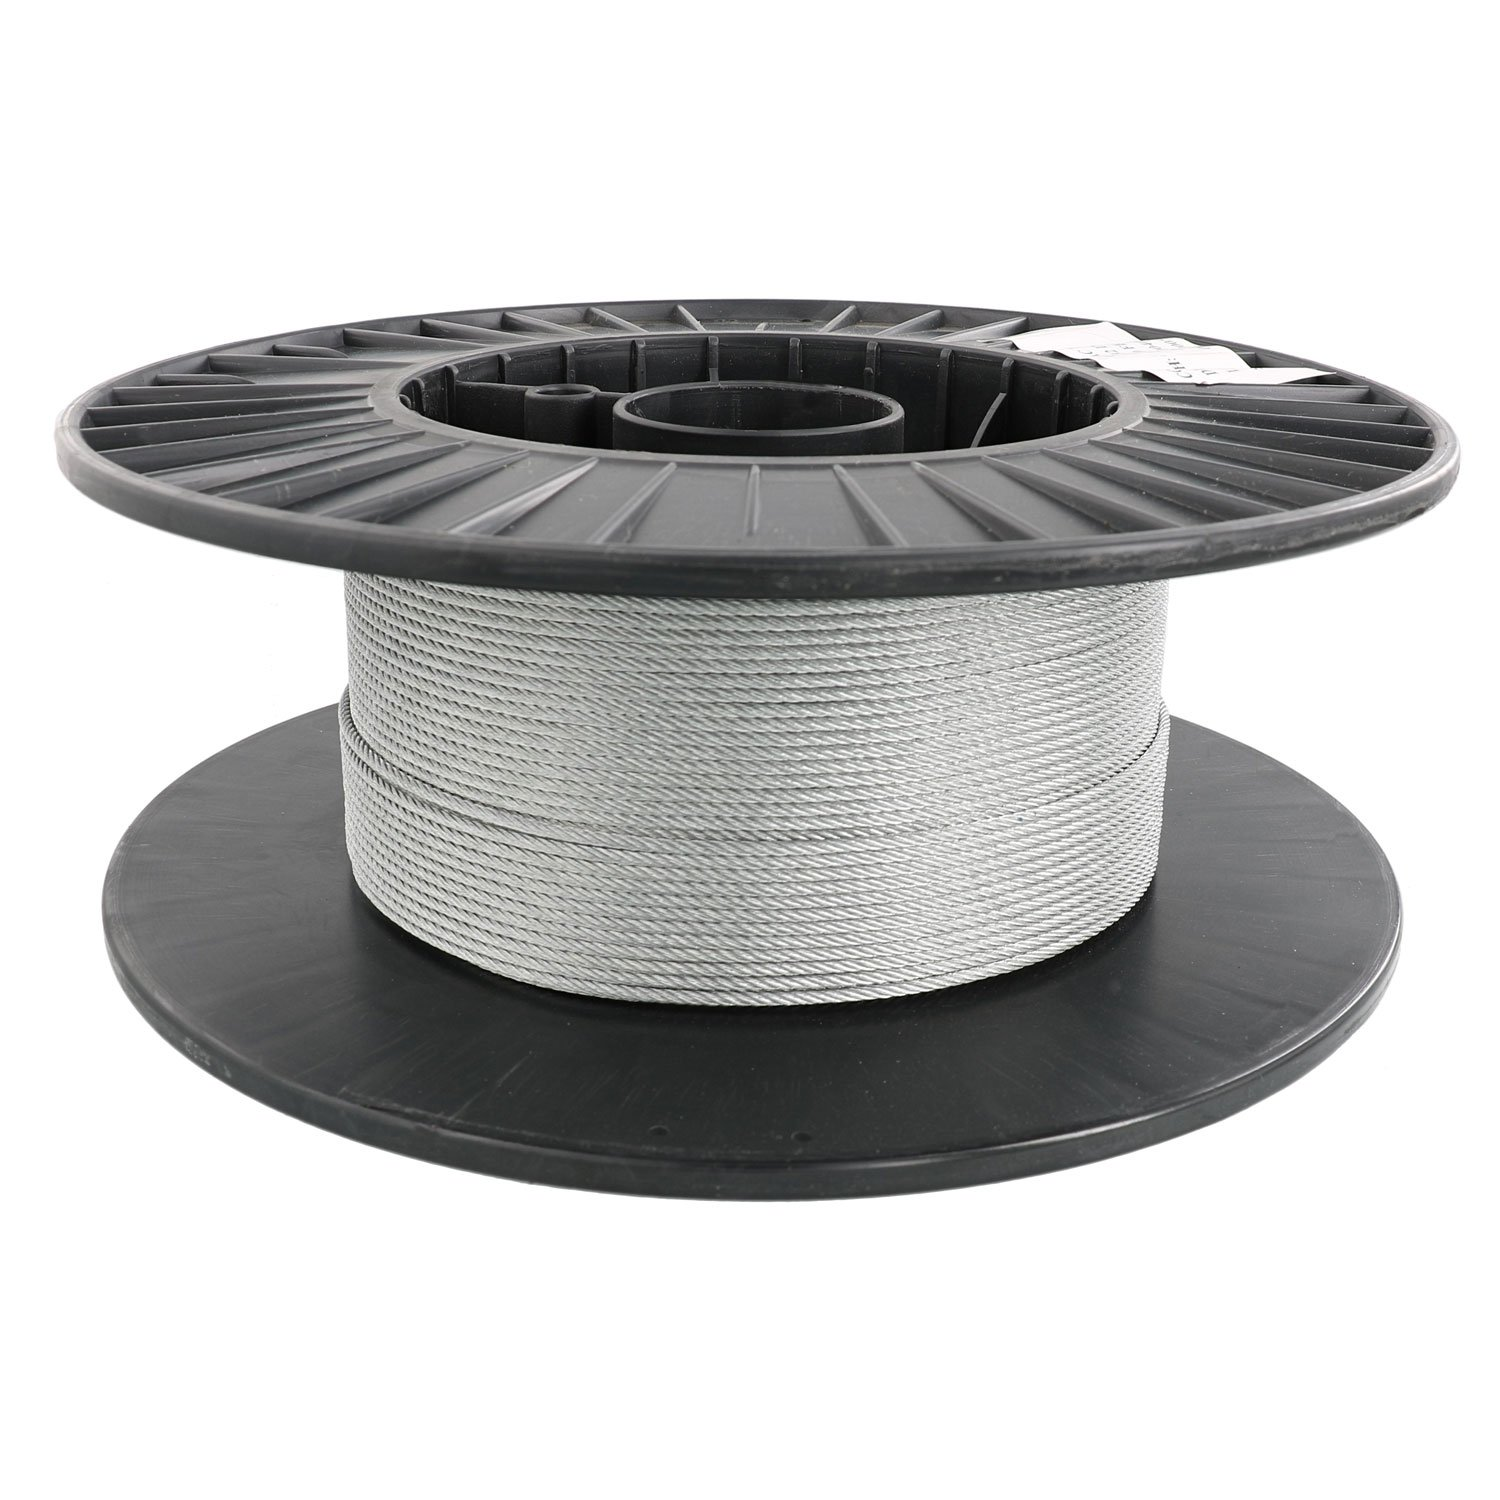 Pro Strand 3//32 X 250 Hot Dip Galvanized Cable Reel 7x19